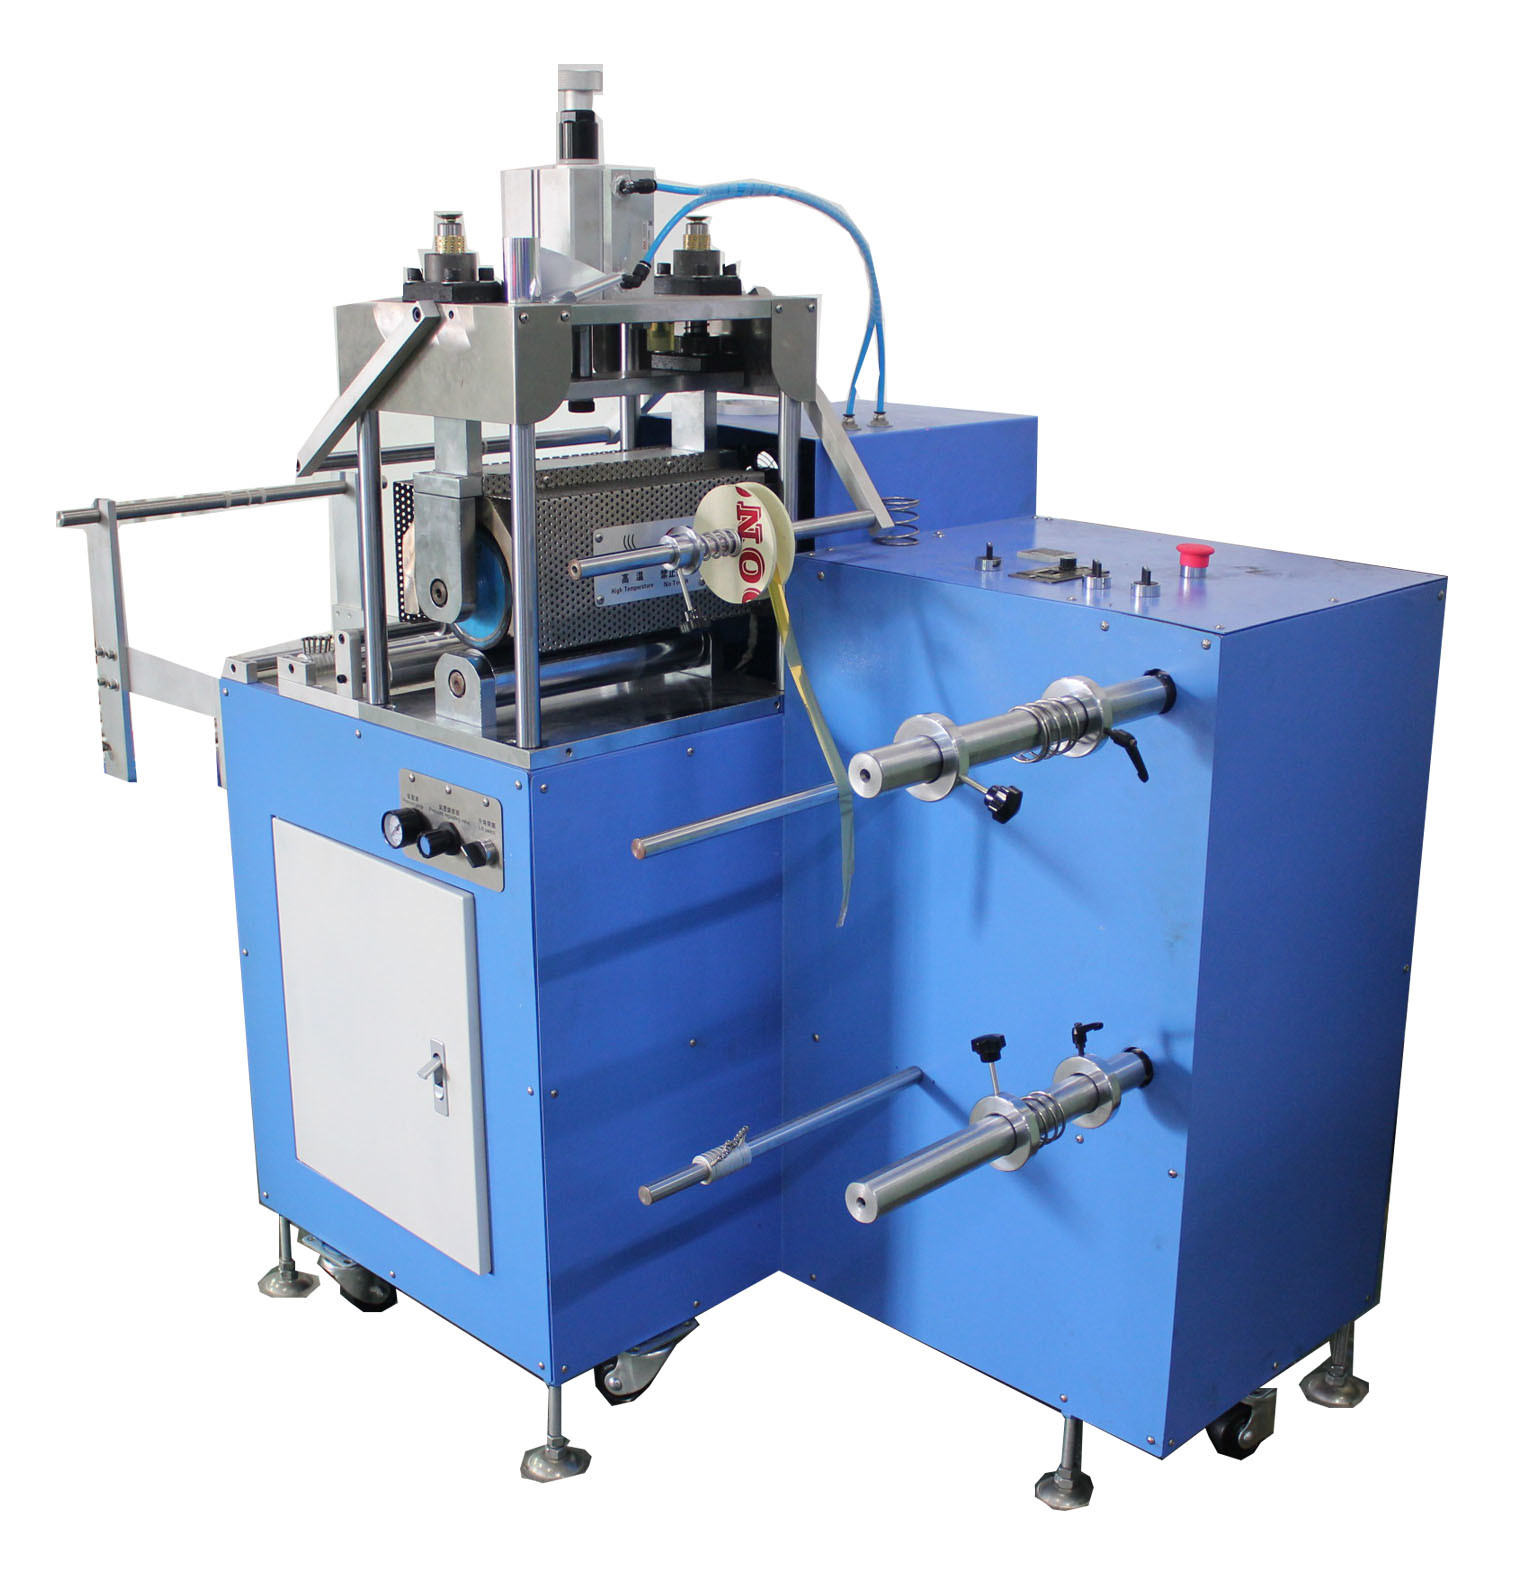 Gift Ribbons Hot Stamping Machine with High Efficiency Dps-3000s-F